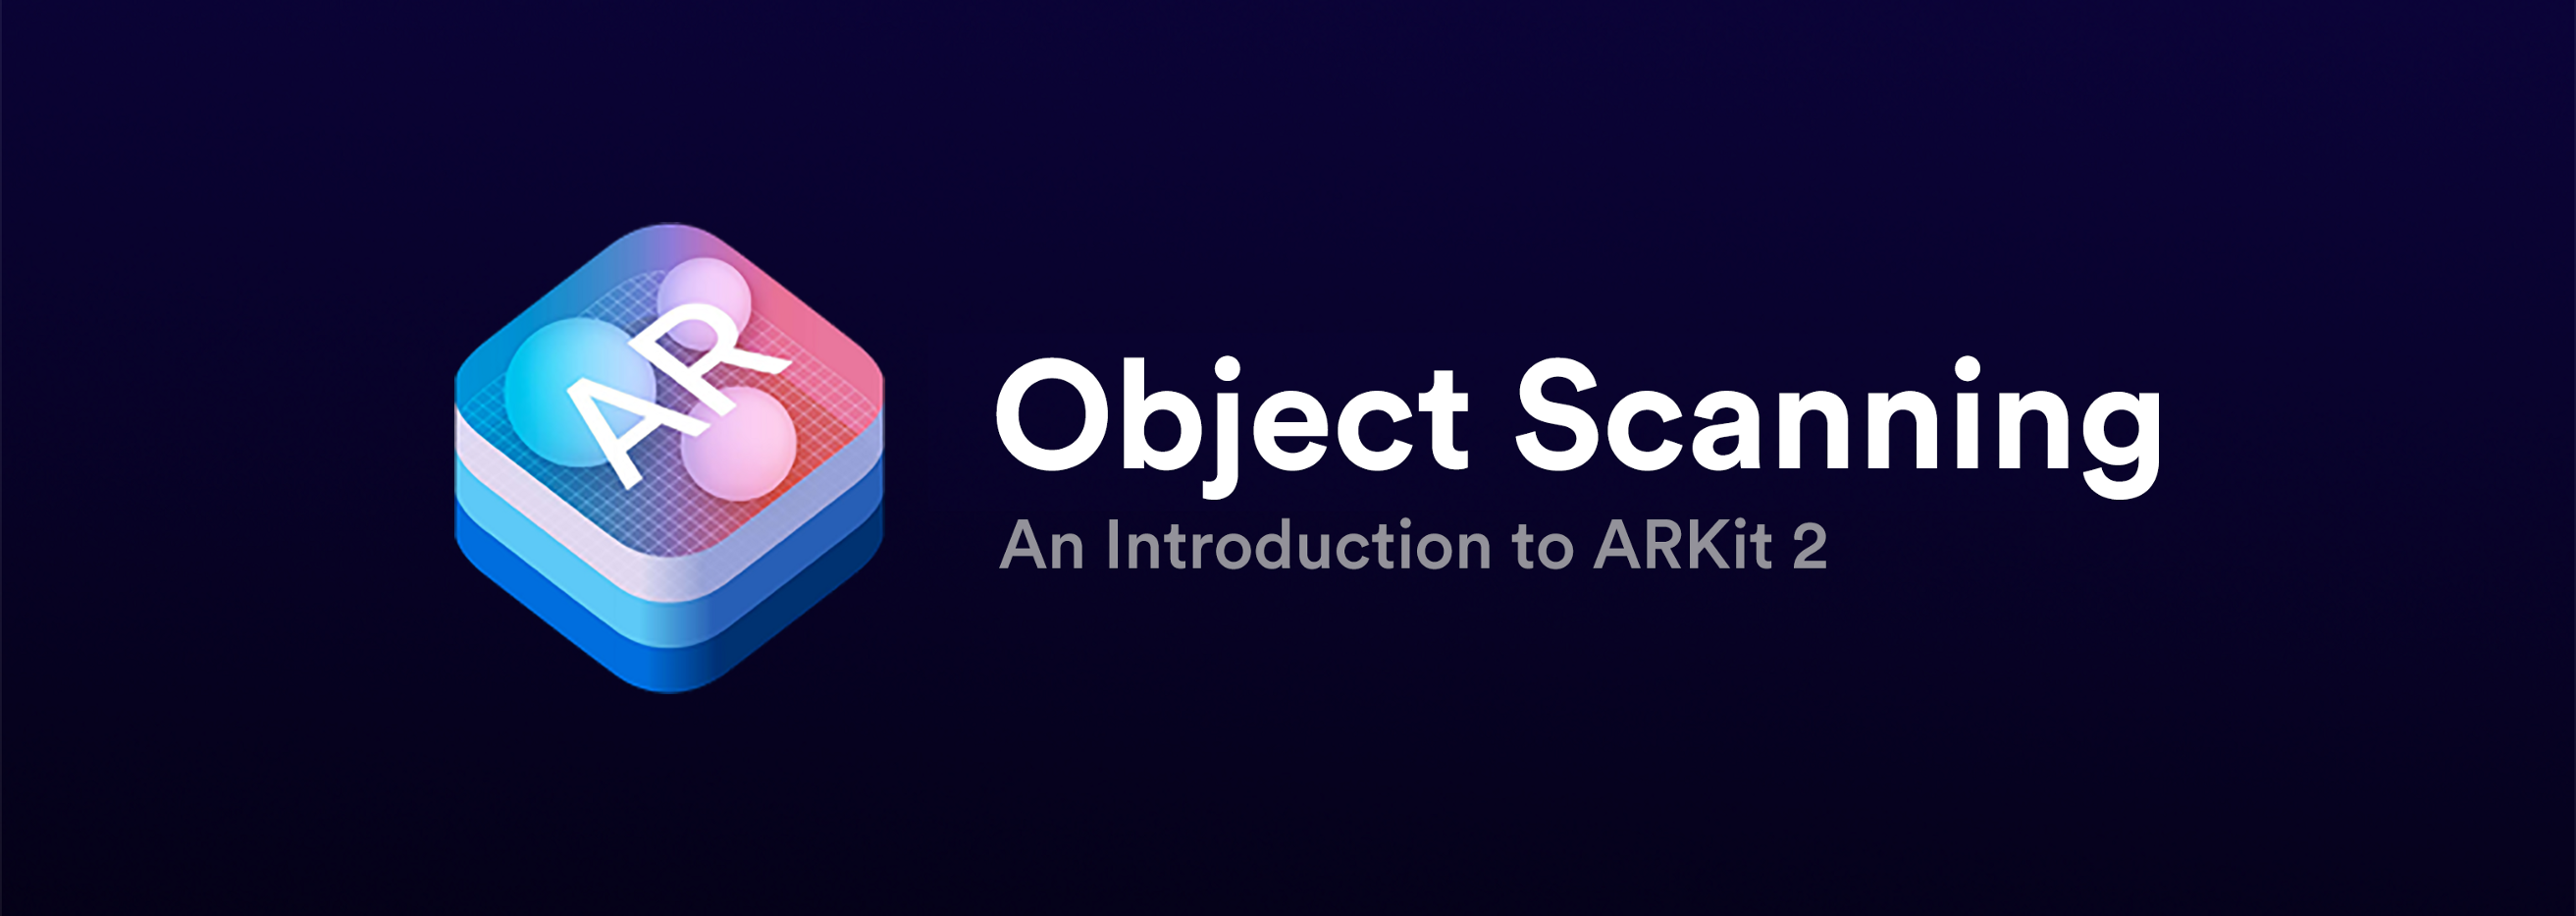 An Introduction to ARKit 2 — Object Scanning - Noteworthy - The